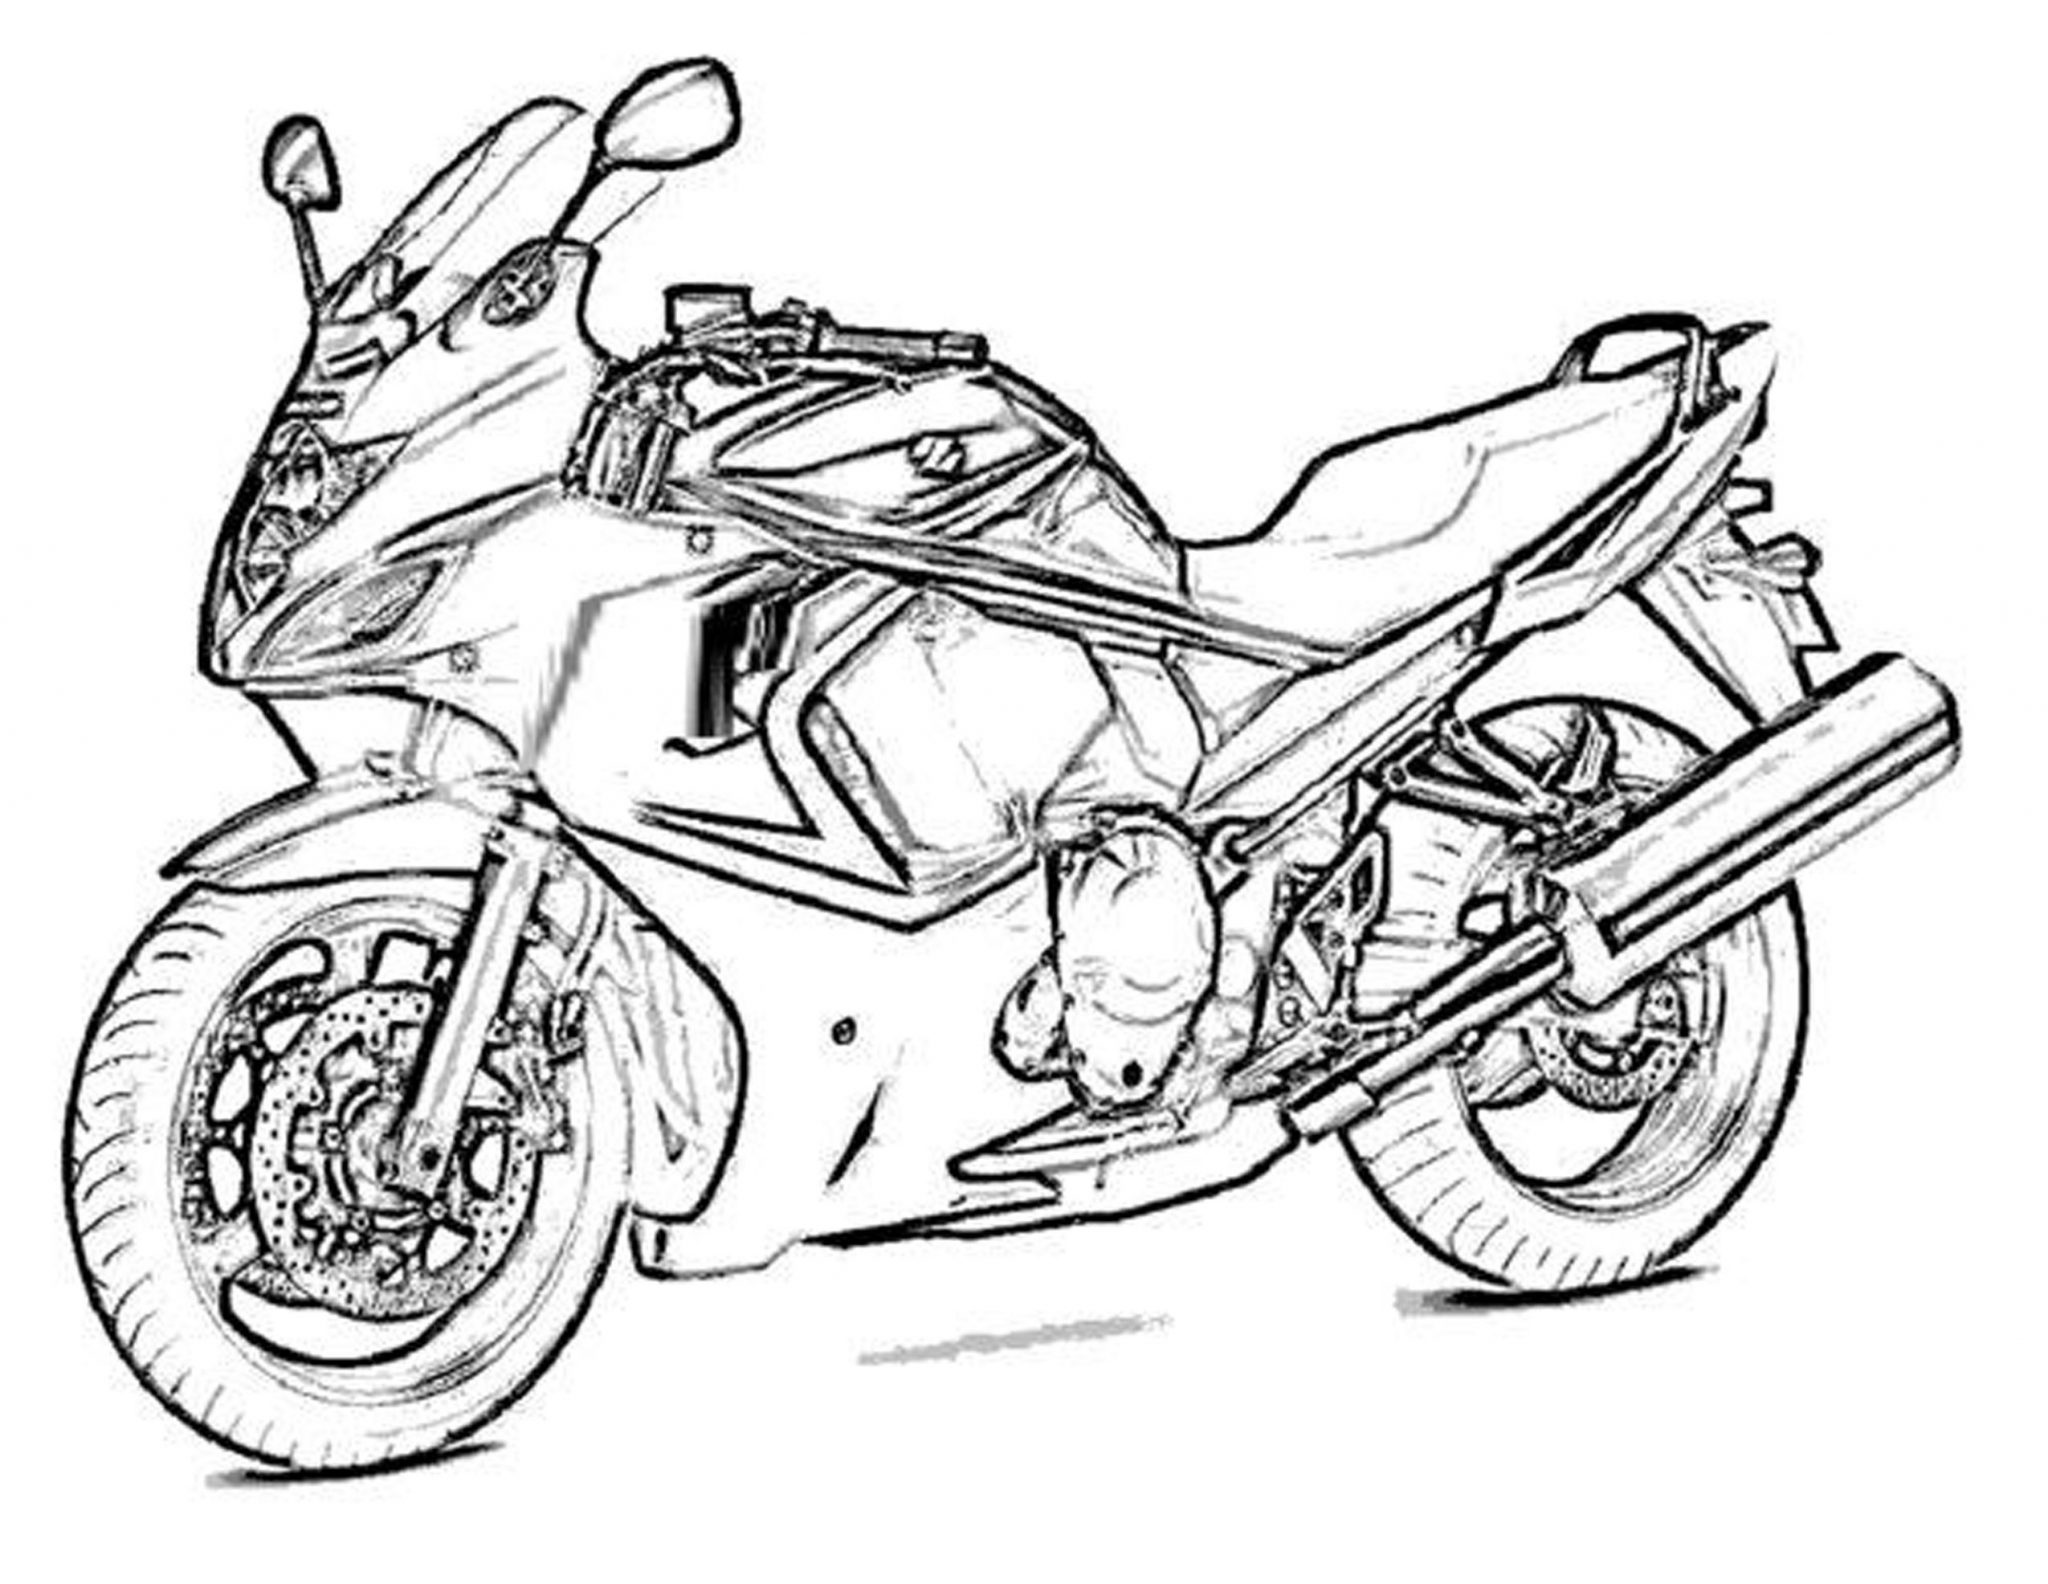 coloring sheets for boys coloring pages for boys training shopping for children for boys coloring sheets